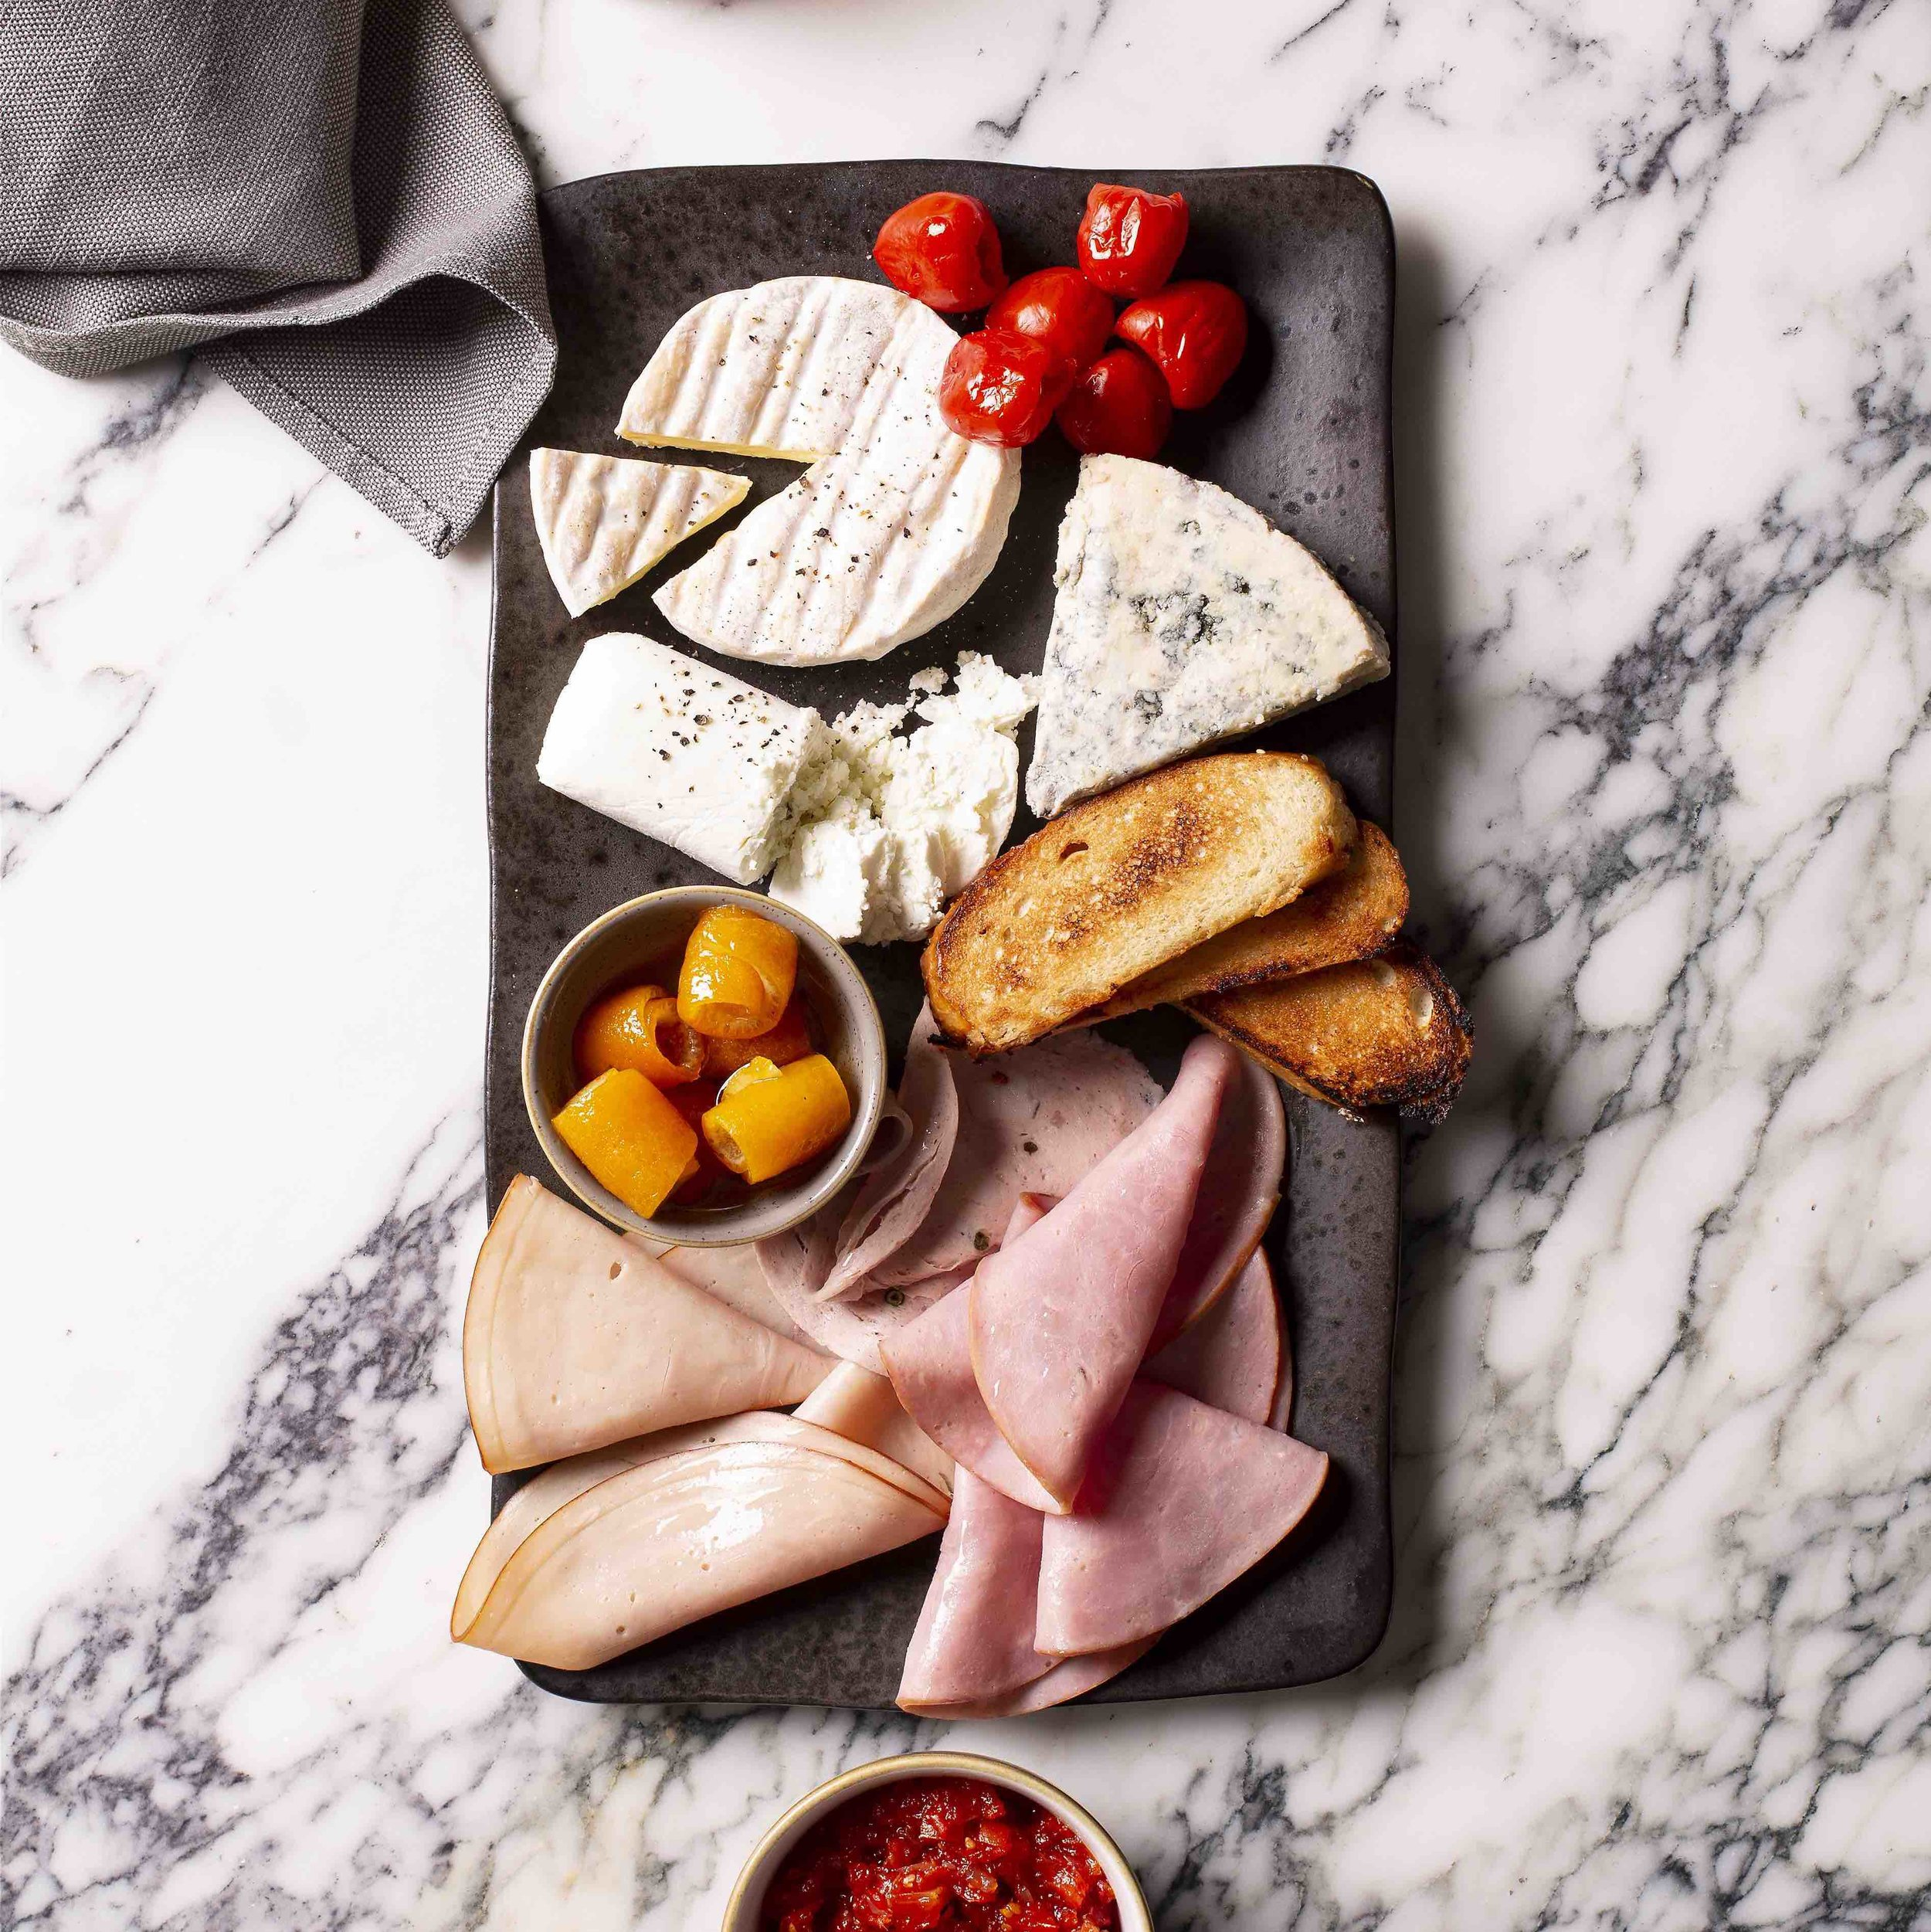 Charcuterie boardR 740 – - Hickory ham, salami and shaved turkey, assortment of South African cheeses, preserves, pickles, grilled vegetables and relishes